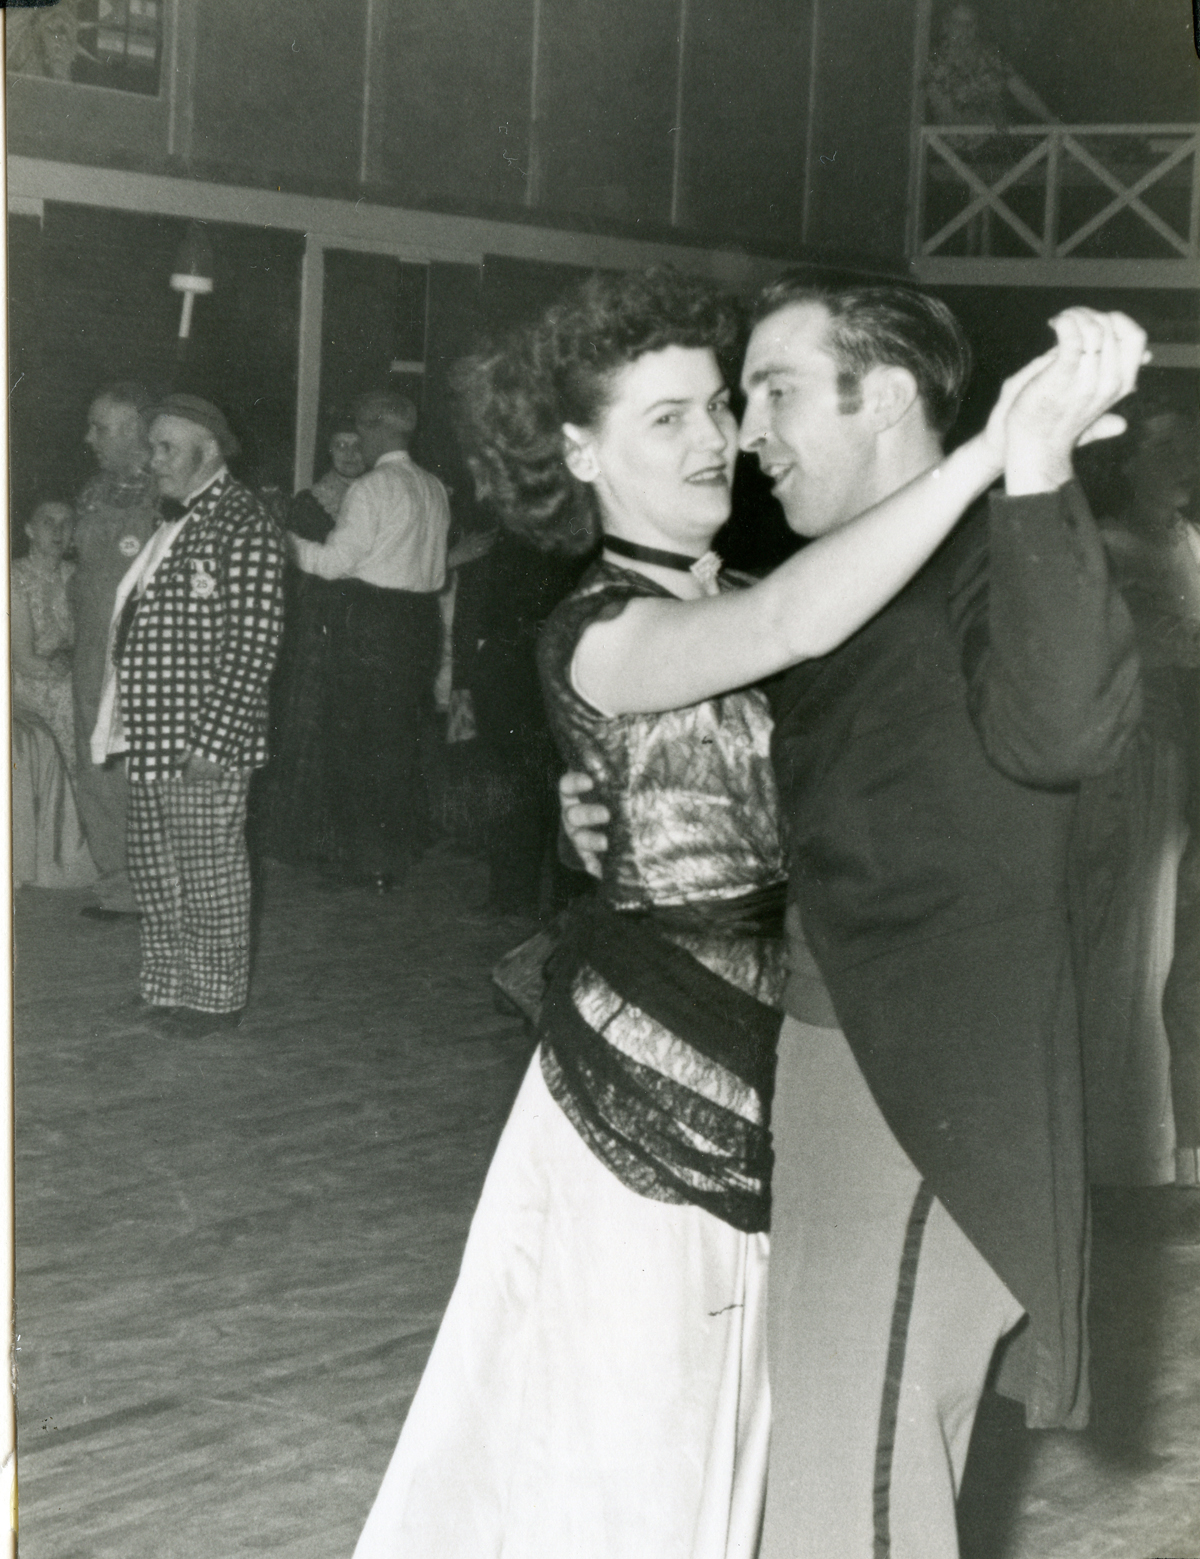 Way Bak - Gay Nineties Ball  2nd Year - 1949